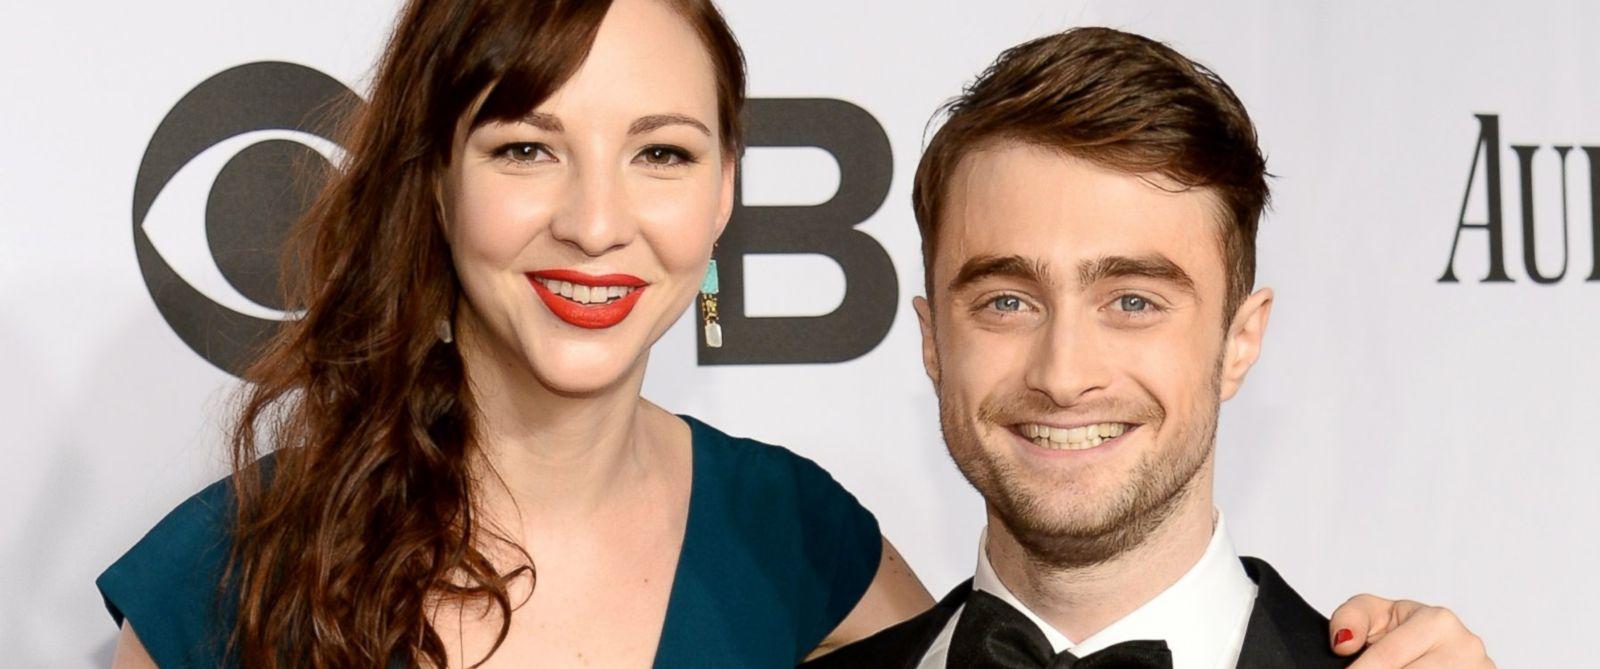 PHOTO: Erin Darke and Daniel Radcliffe attend the 68th Annual Tony Awards at Radio City Music Hall, June 8, 2014, in New York City.